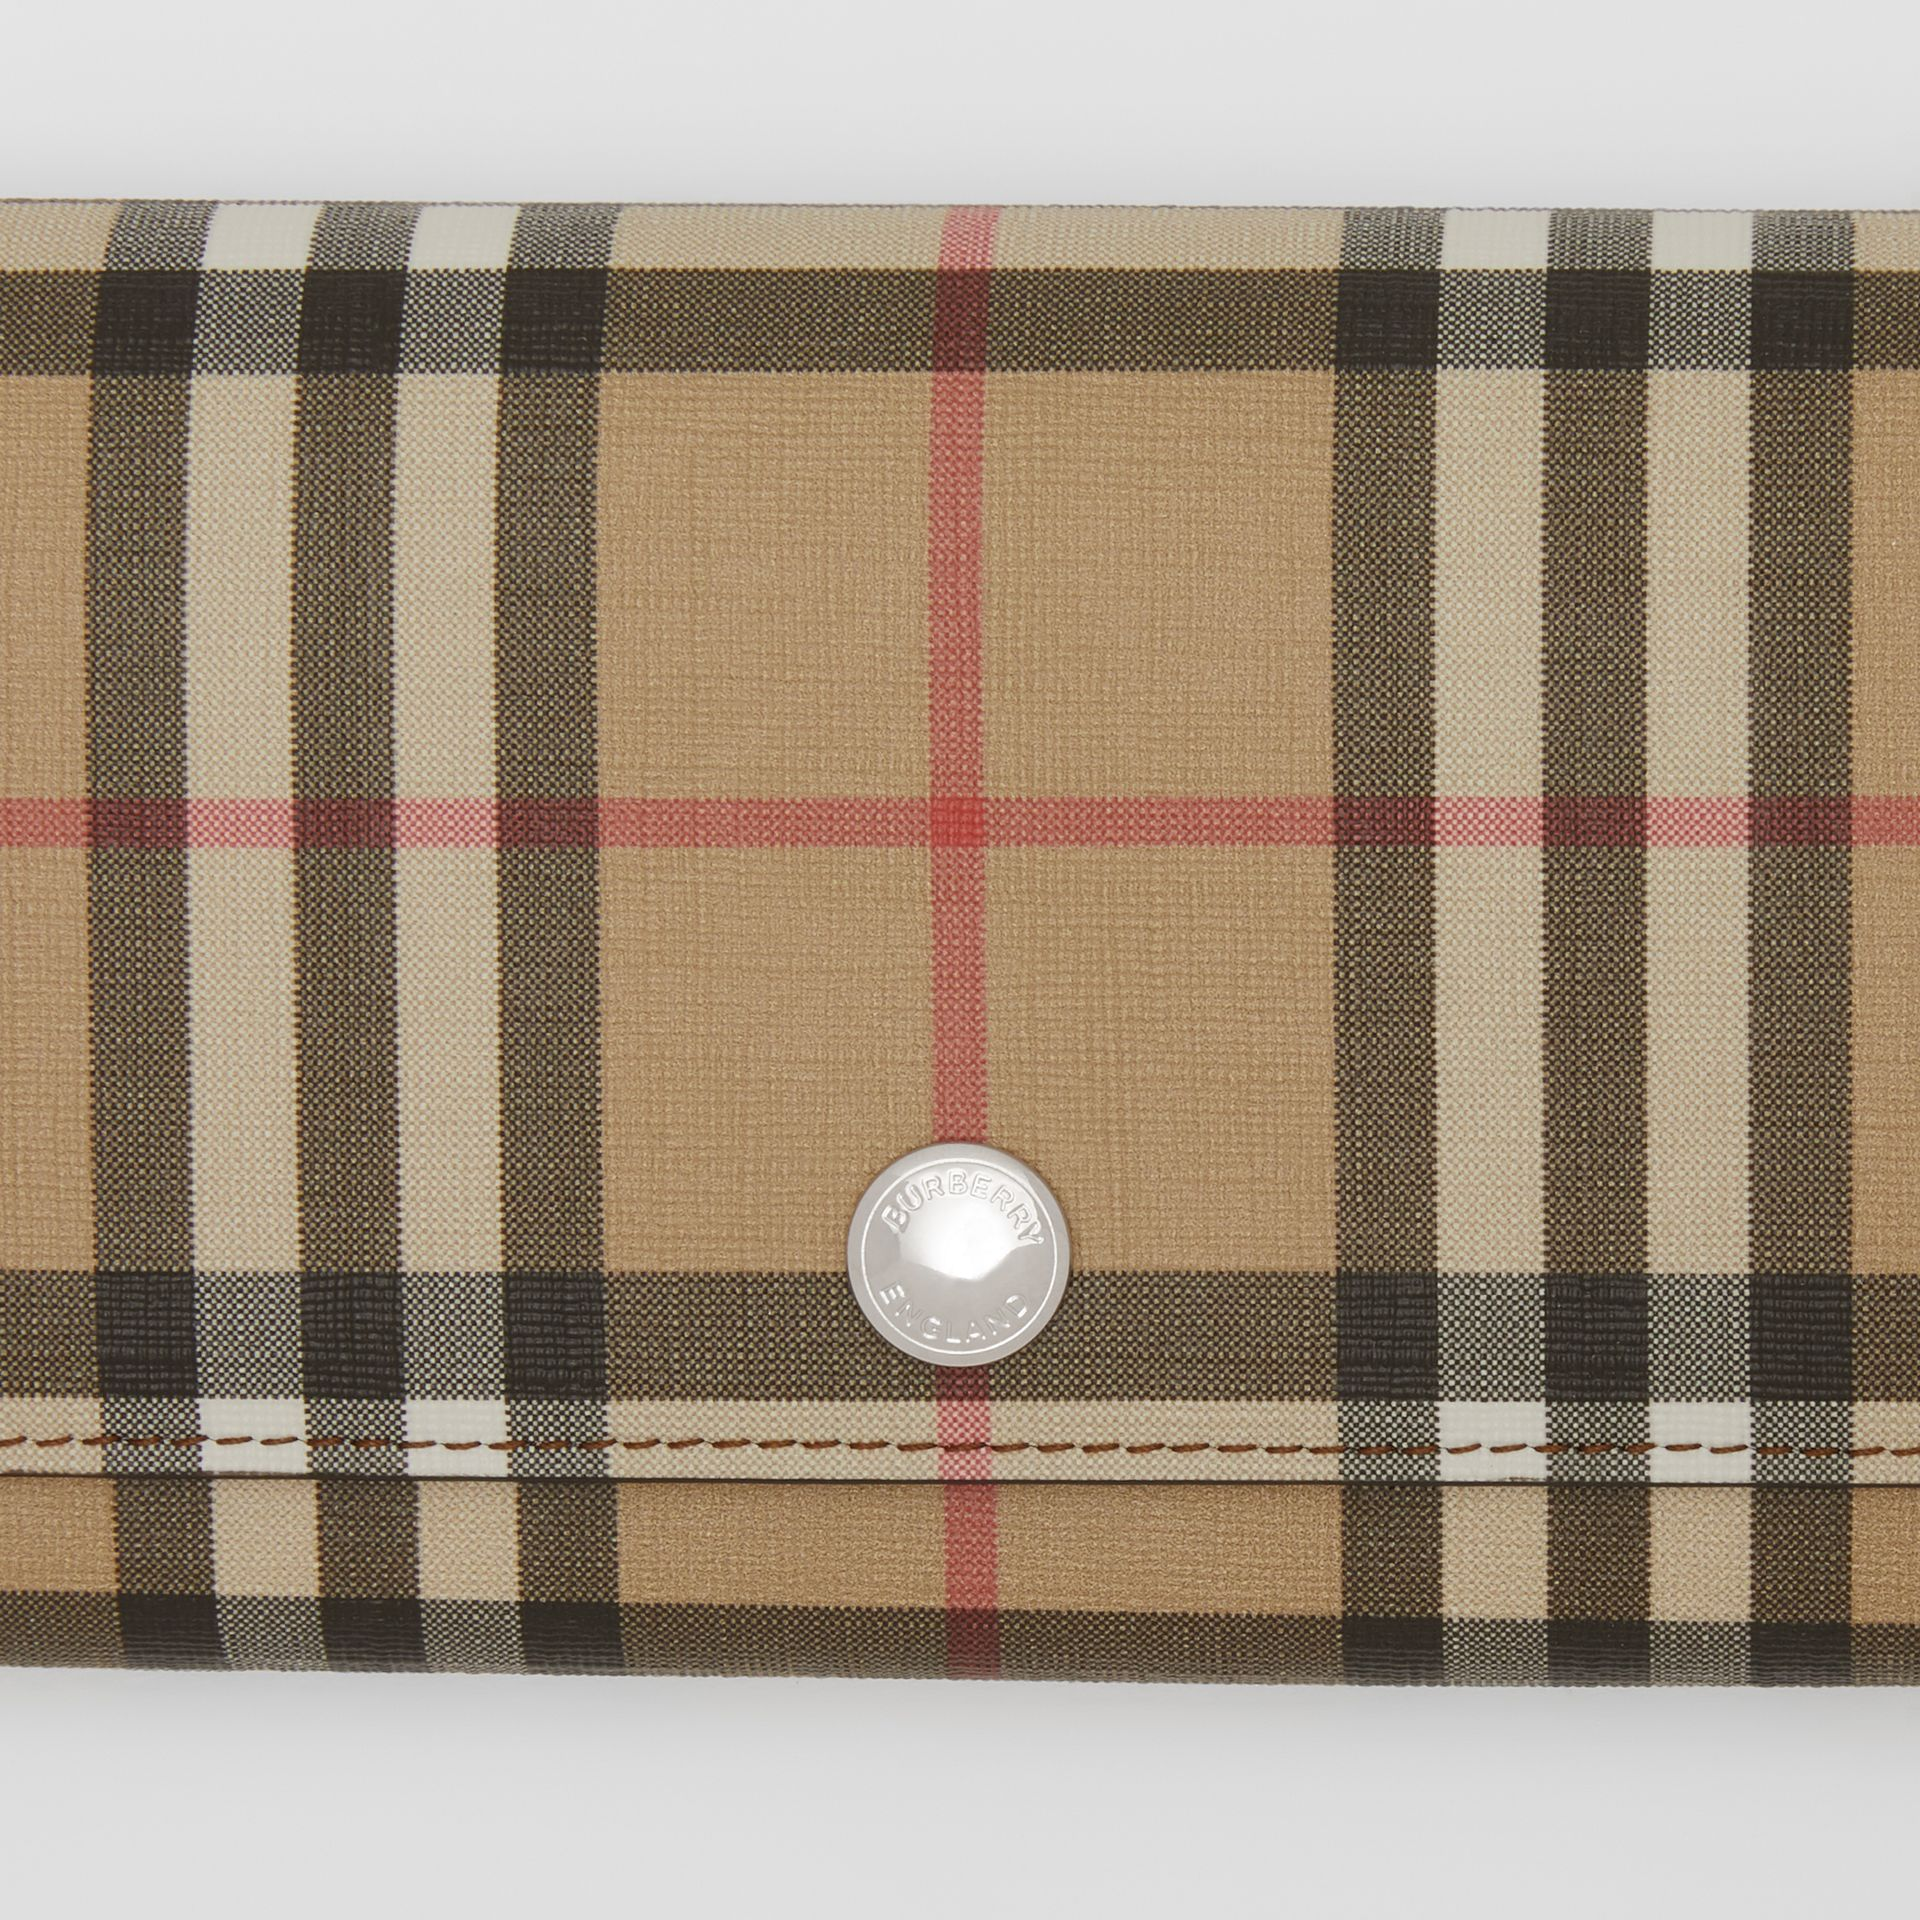 Vintage Check E-canvas Continental Wallet in Malt Brown - Women | Burberry - gallery image 1